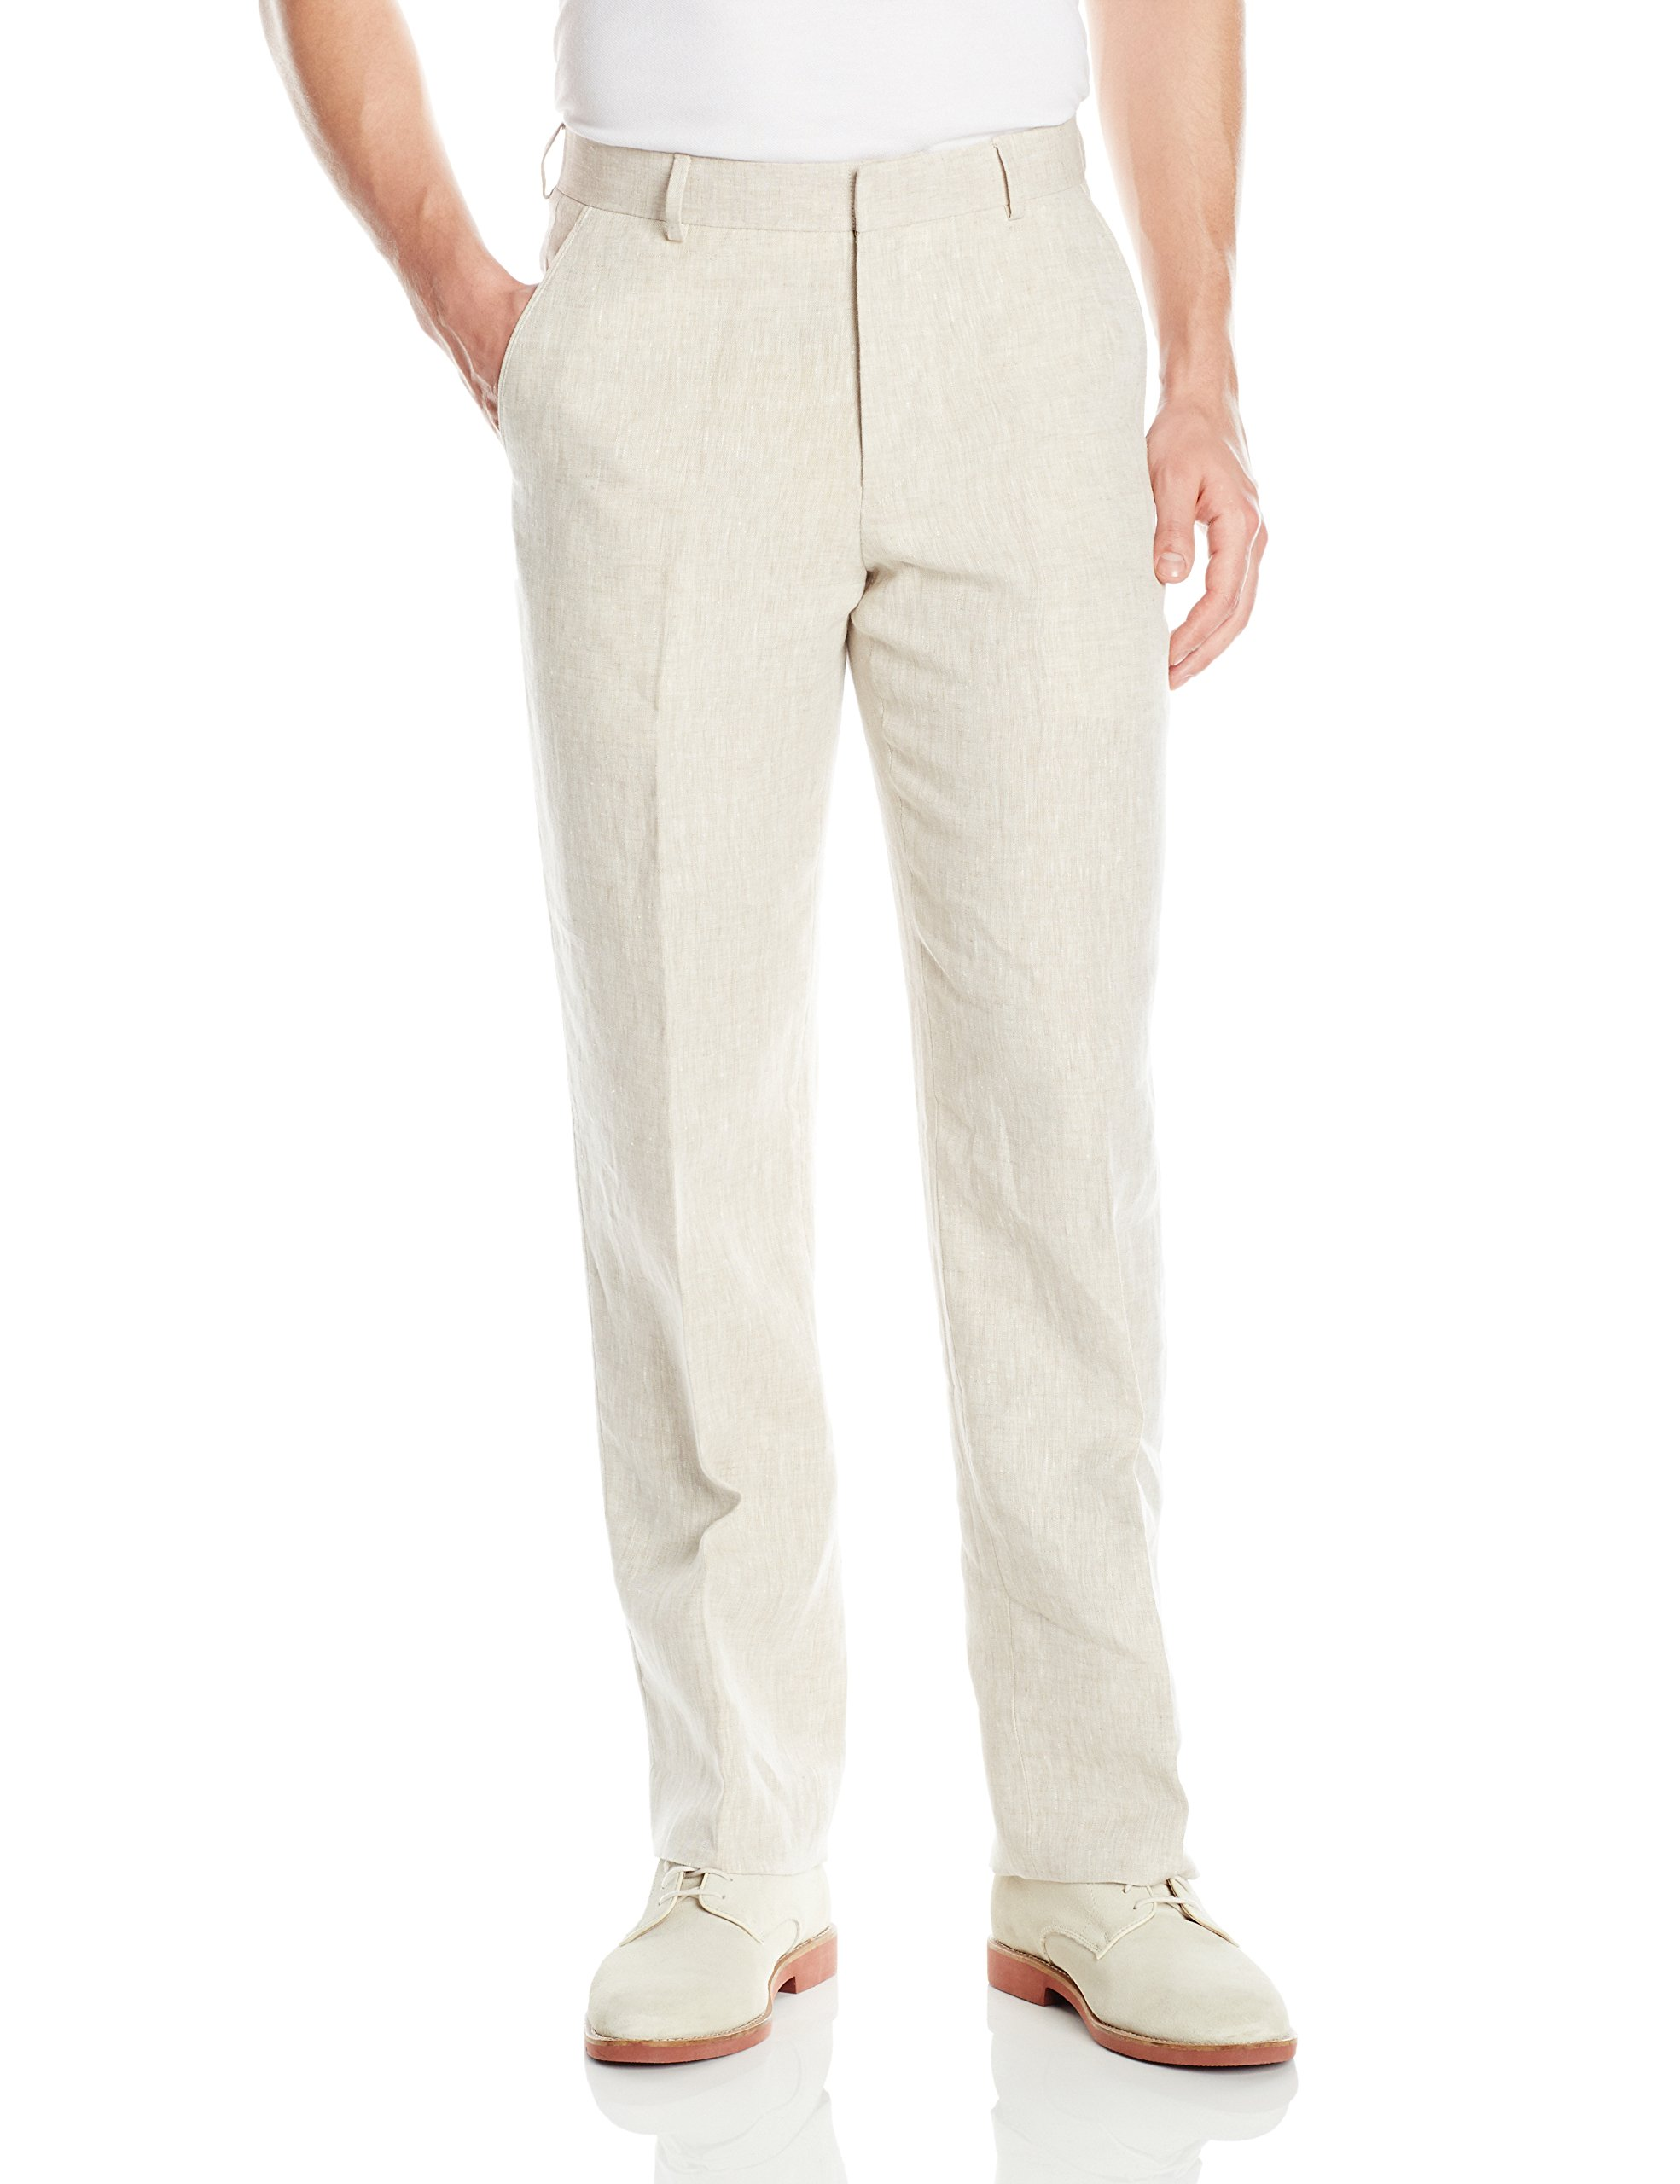 Palm Beach Men's Oxford Linen Plain Front Dress Pants, Natural, 36W Regular